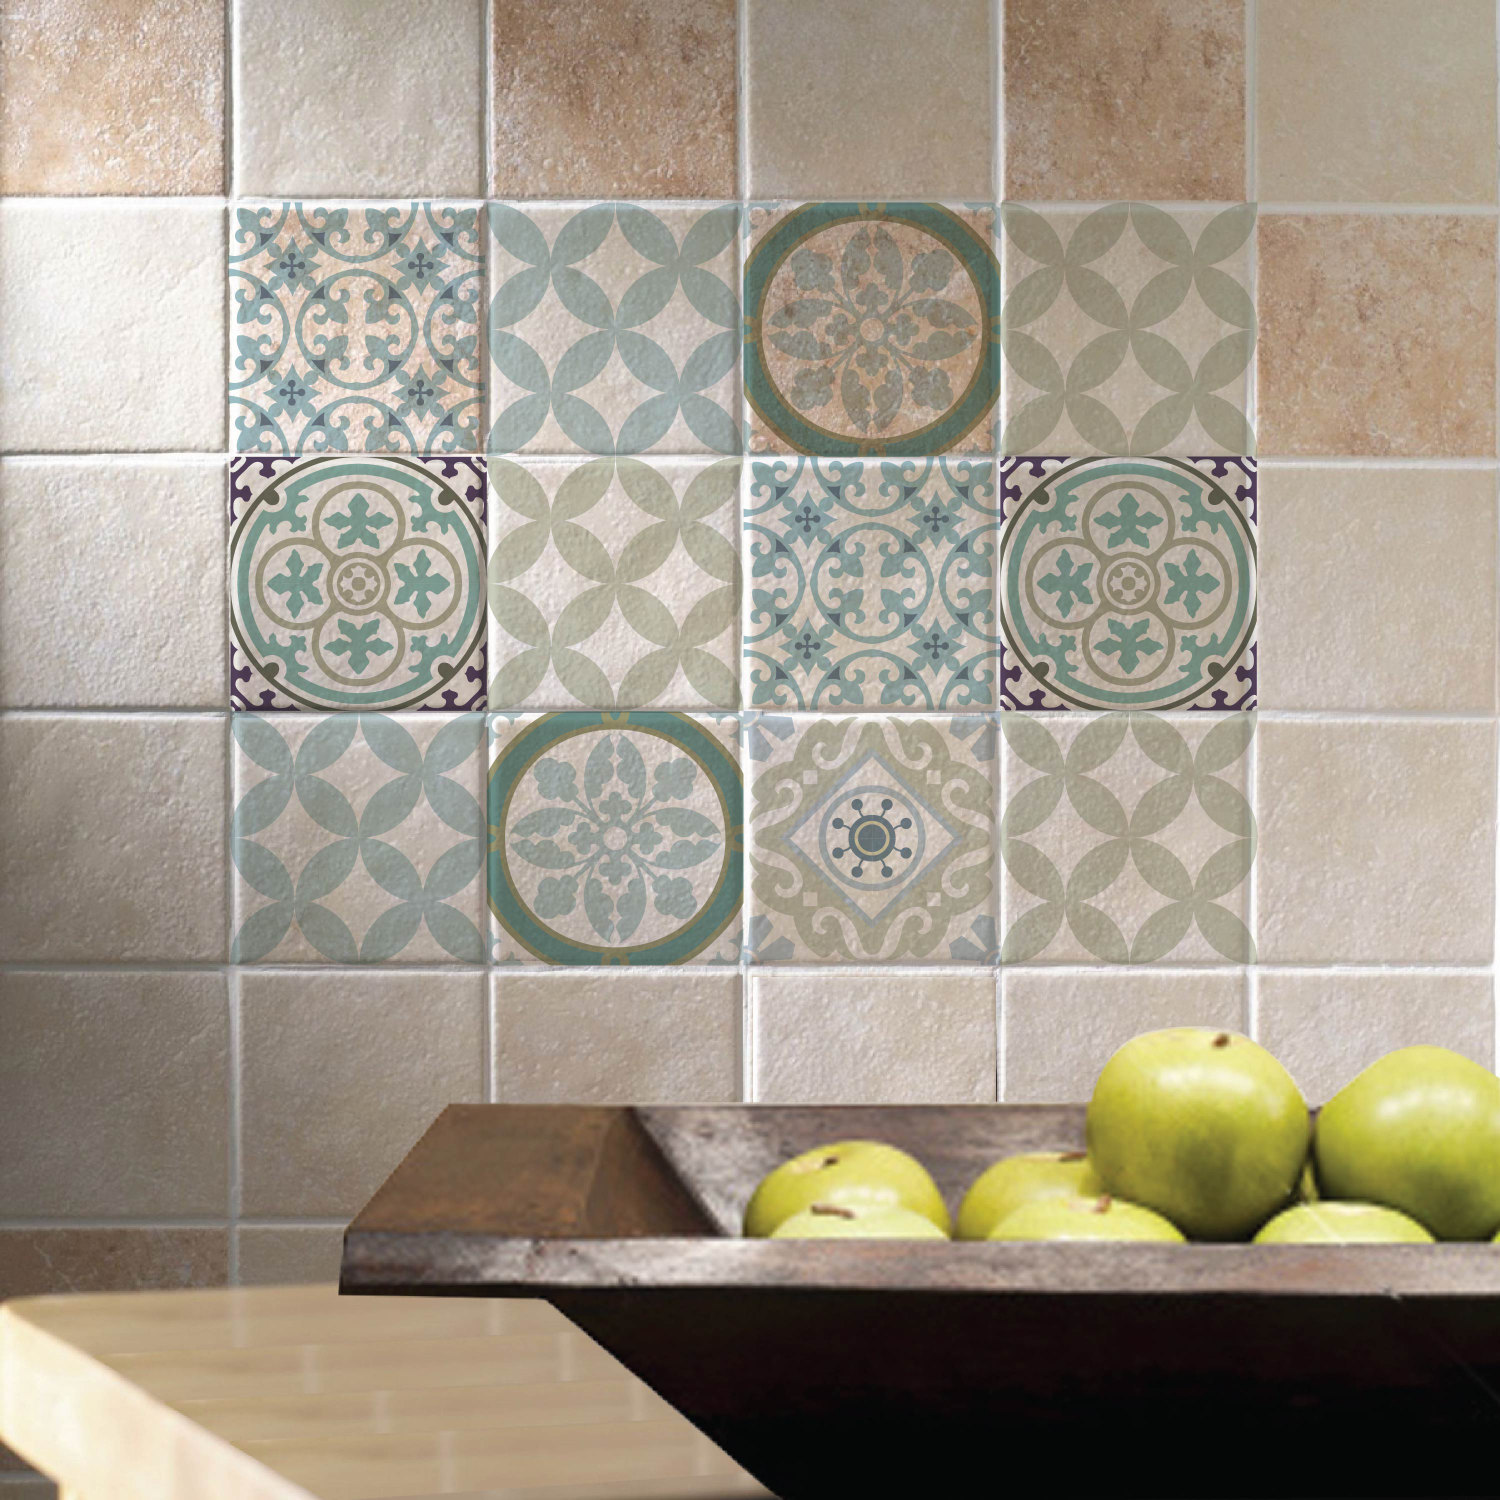 Mix Tile Decals Kitchen Bathroom Tiles Vinyl Floor Tiles Free Shipping Design 314